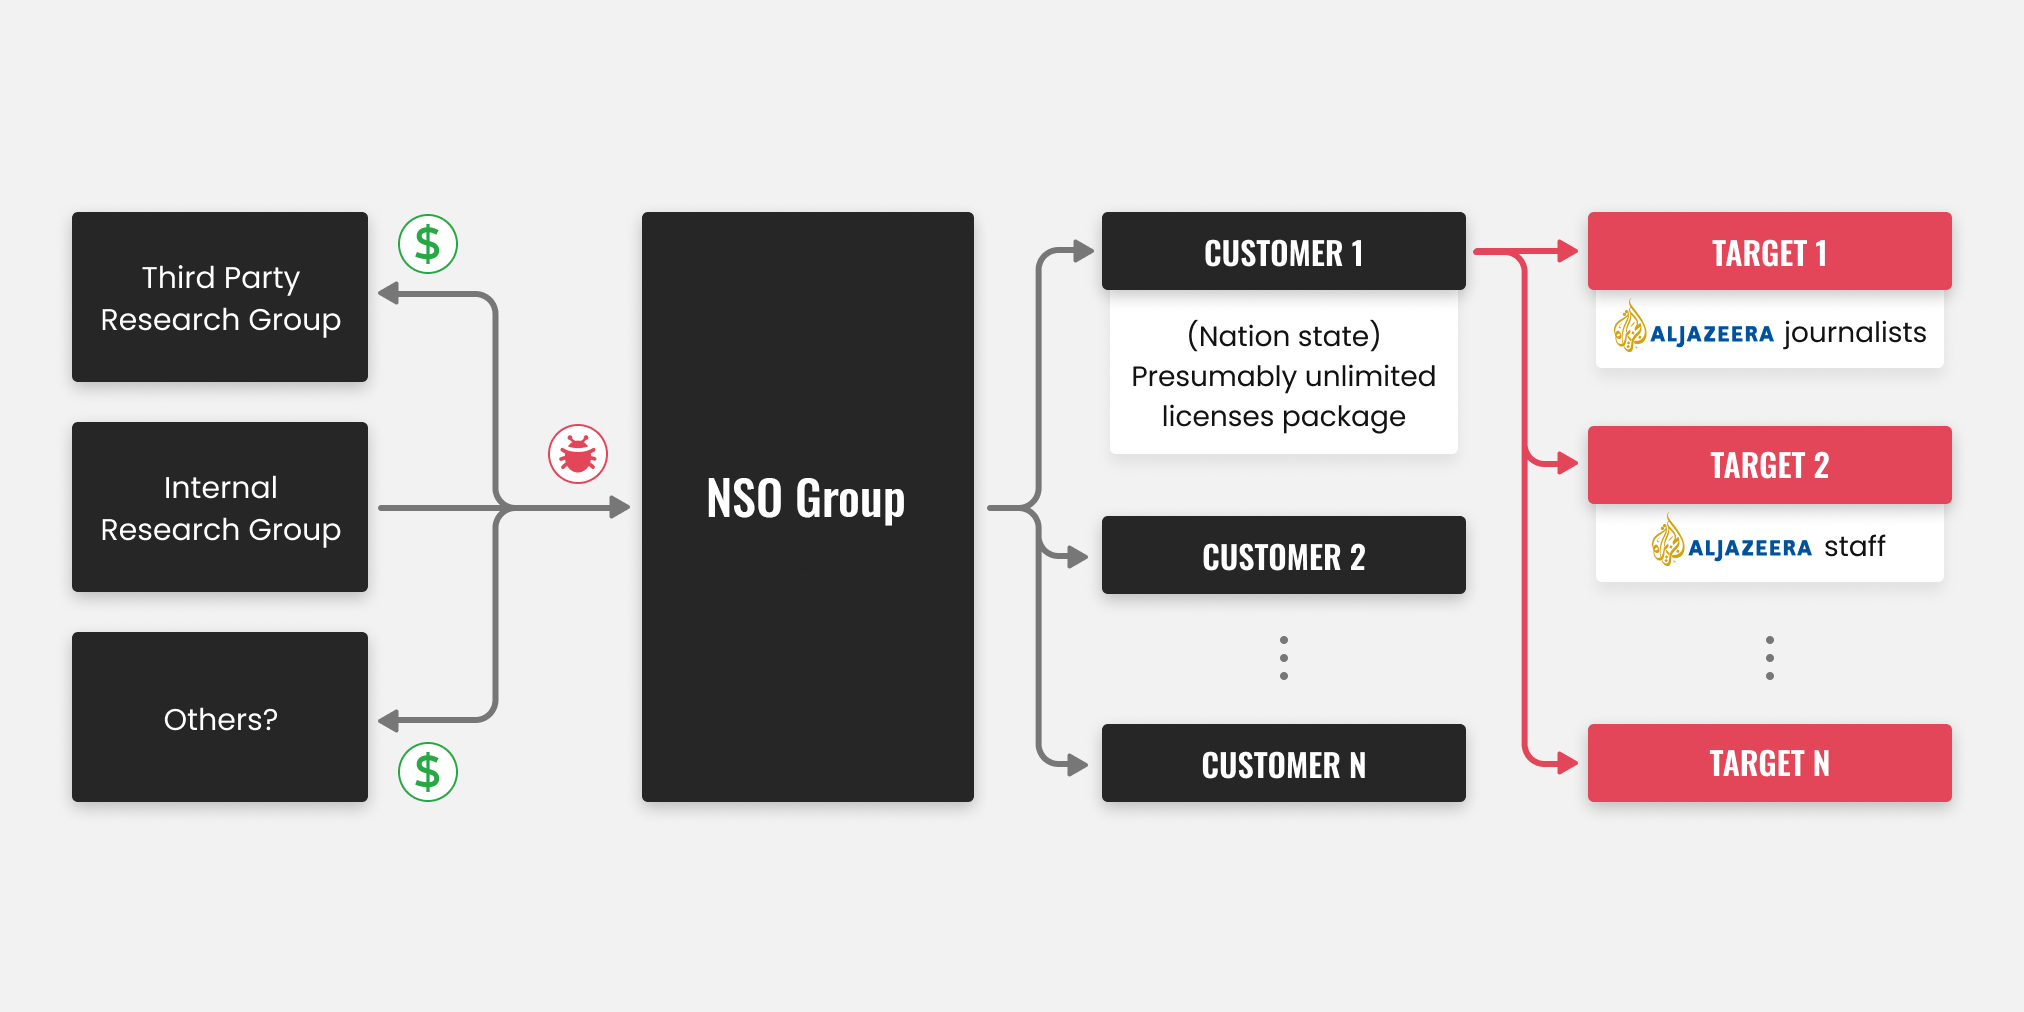 nso-group-threat-actors